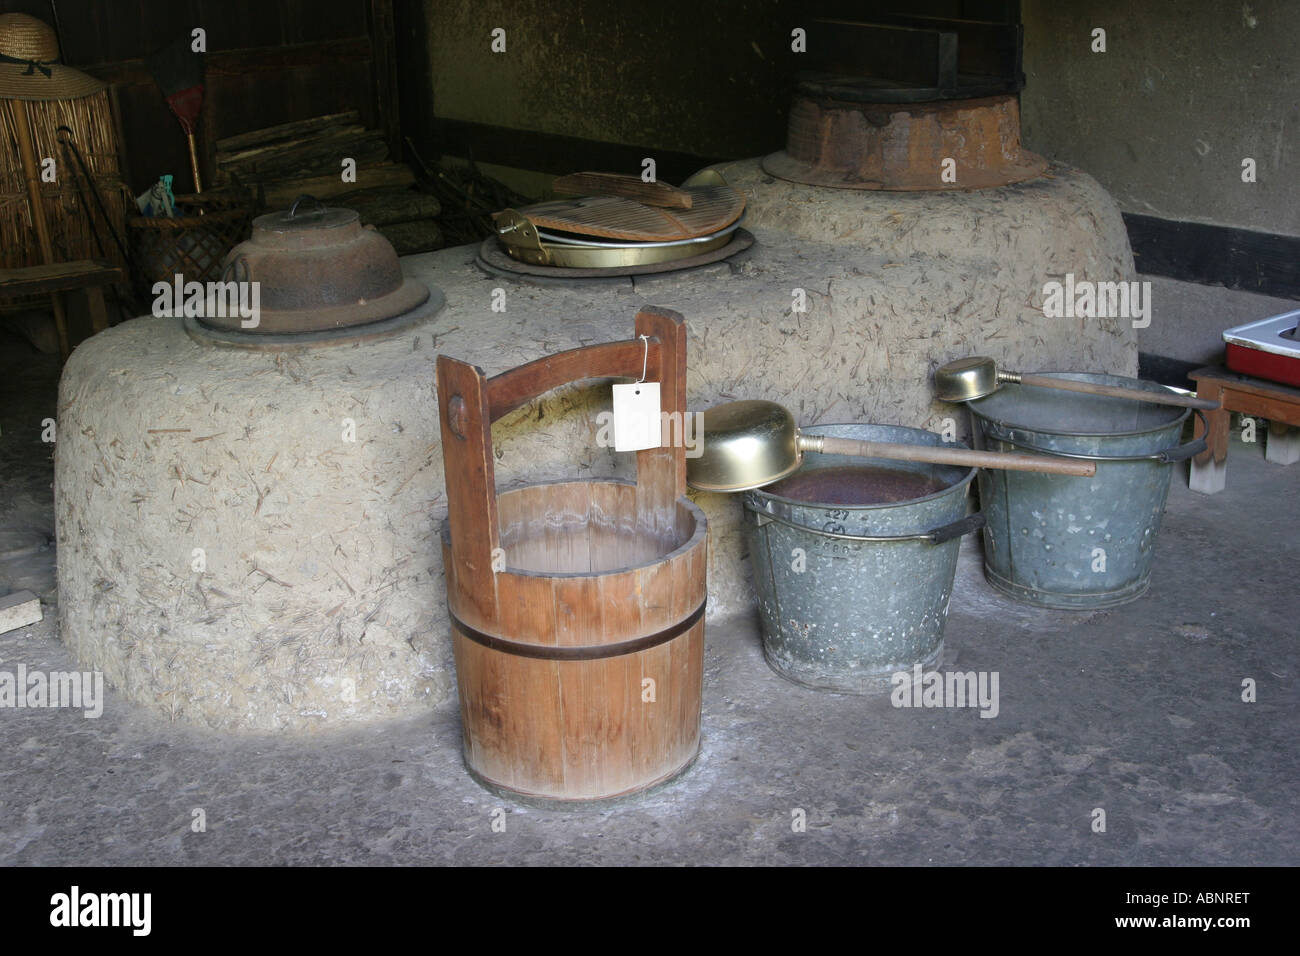 Traditional japanese house kitchen stock photo royalty for Traditional japanese kitchen